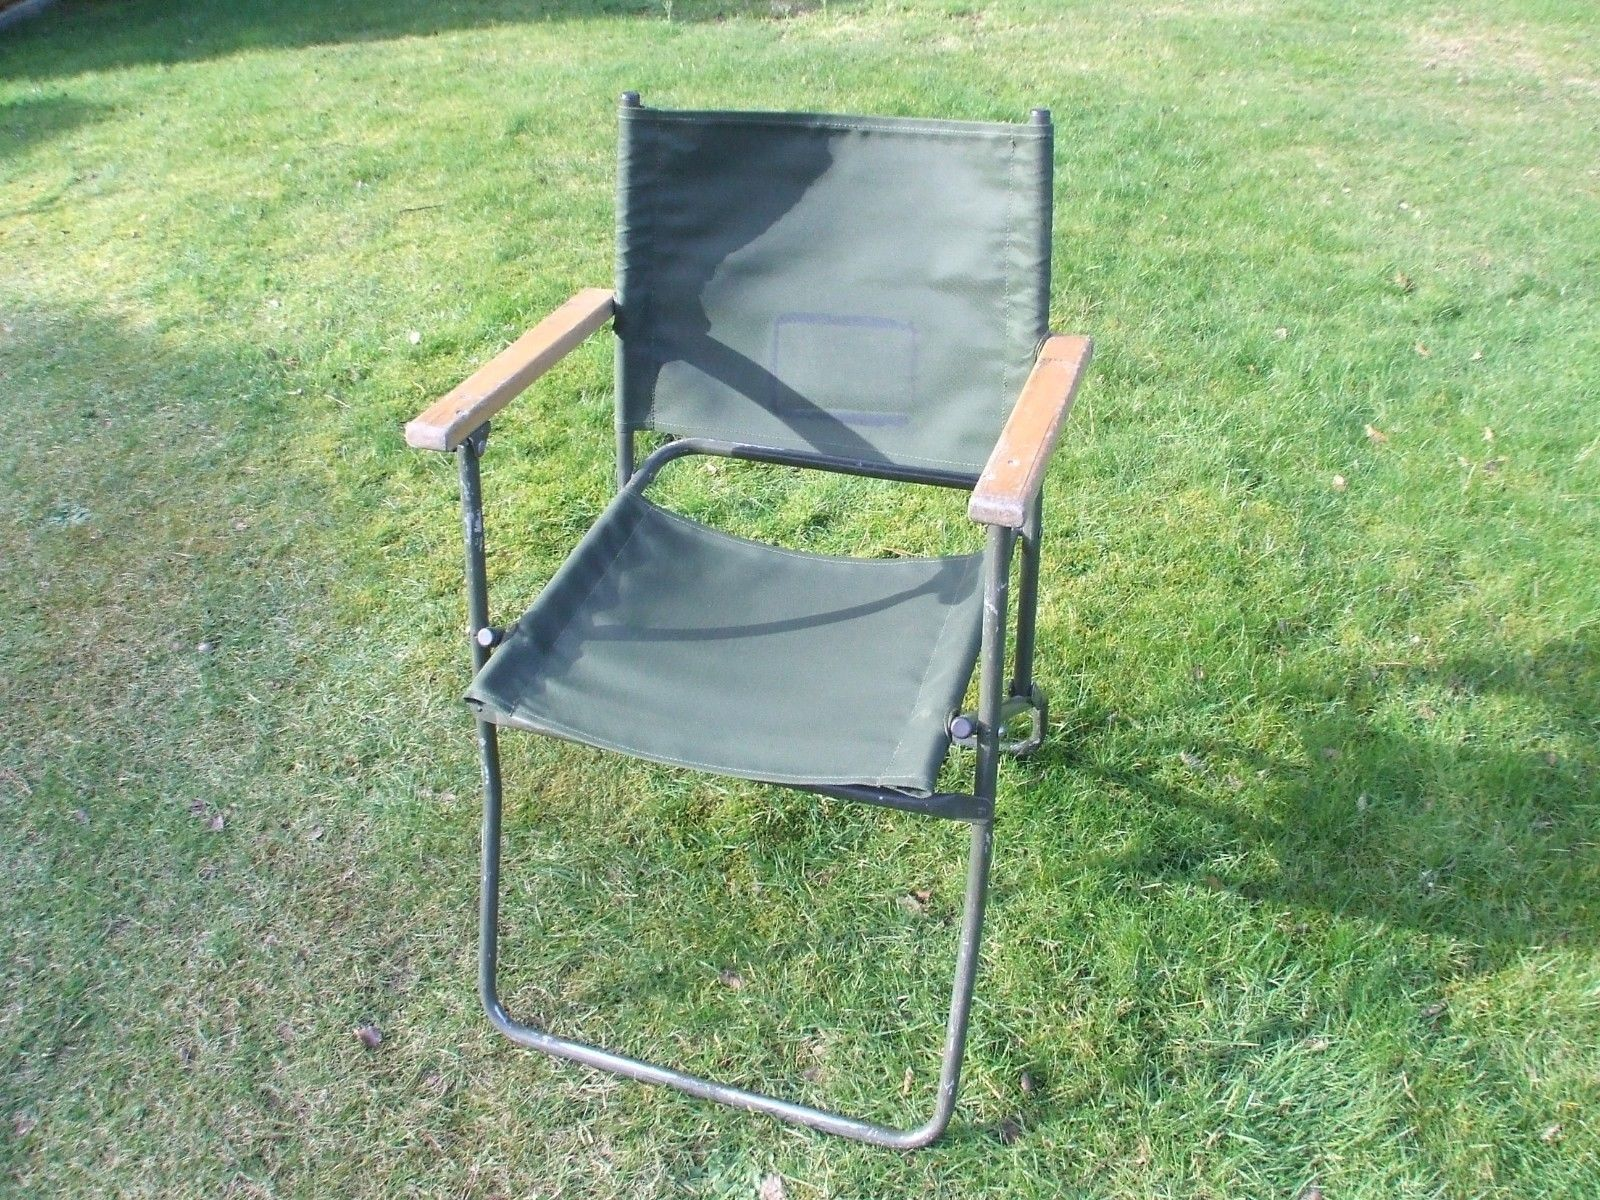 British Army Military Folding Canvas Chair Land Rover Chair Vintage Rare British Army Land Rover Vintage